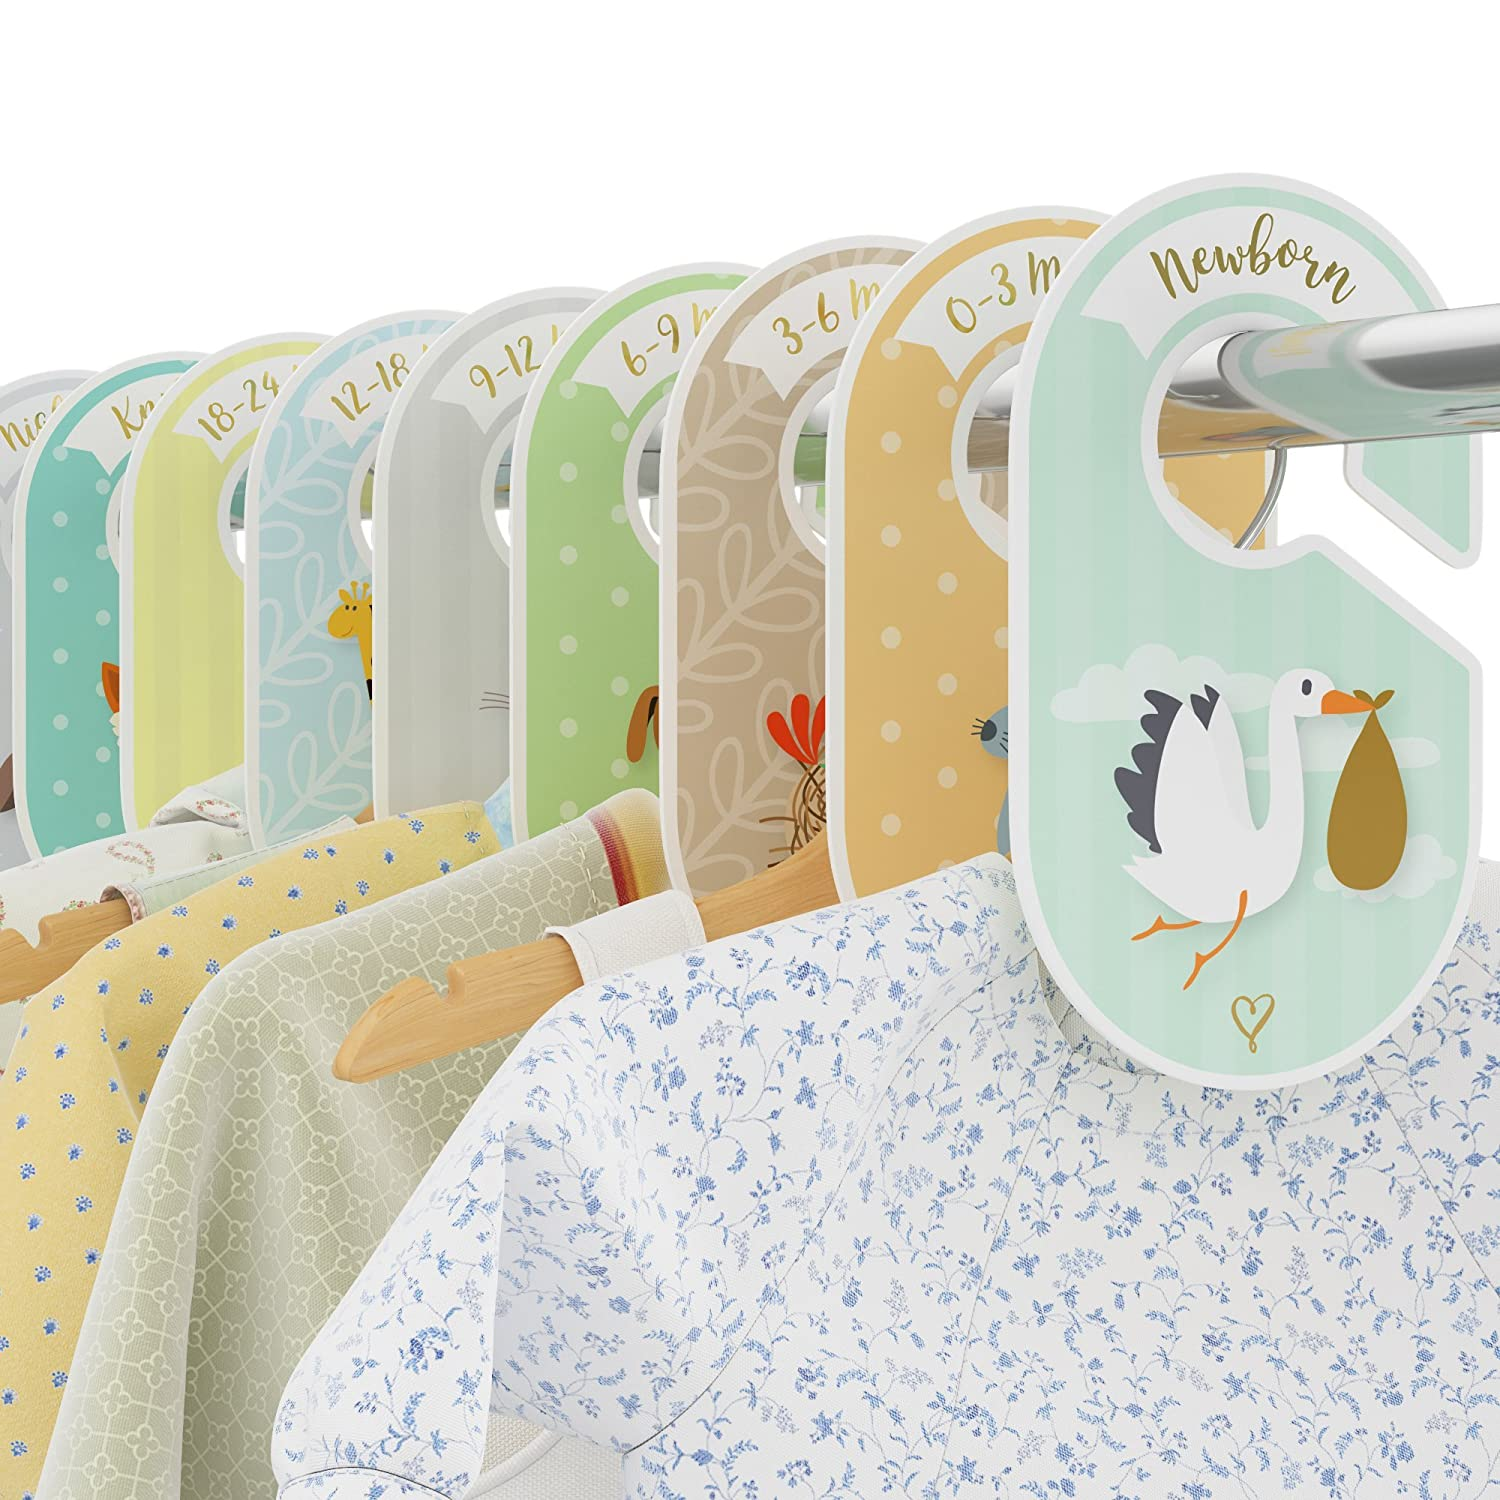 4e80bc4bca918 COZY HEDGEHOG Baby Wardrobe Dividers - 18 closet organisers/hangers -  Arrange clothes by clothing type or age - Perfect set - Unisex  Woodland/Safari / ...